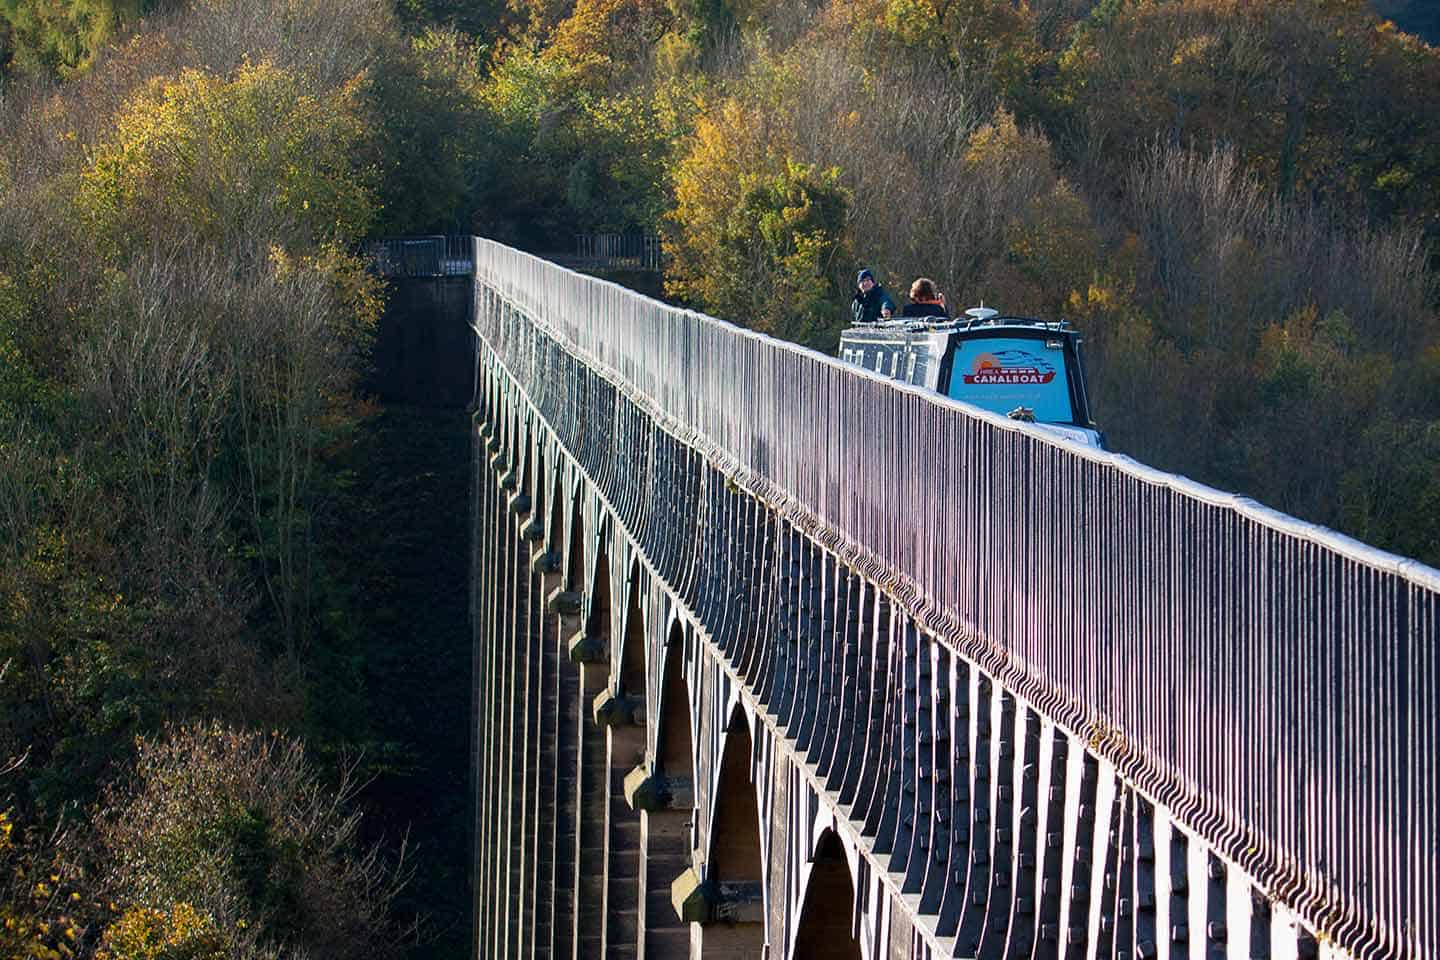 Image of a boat on the Pontcysyllte Aqueduct